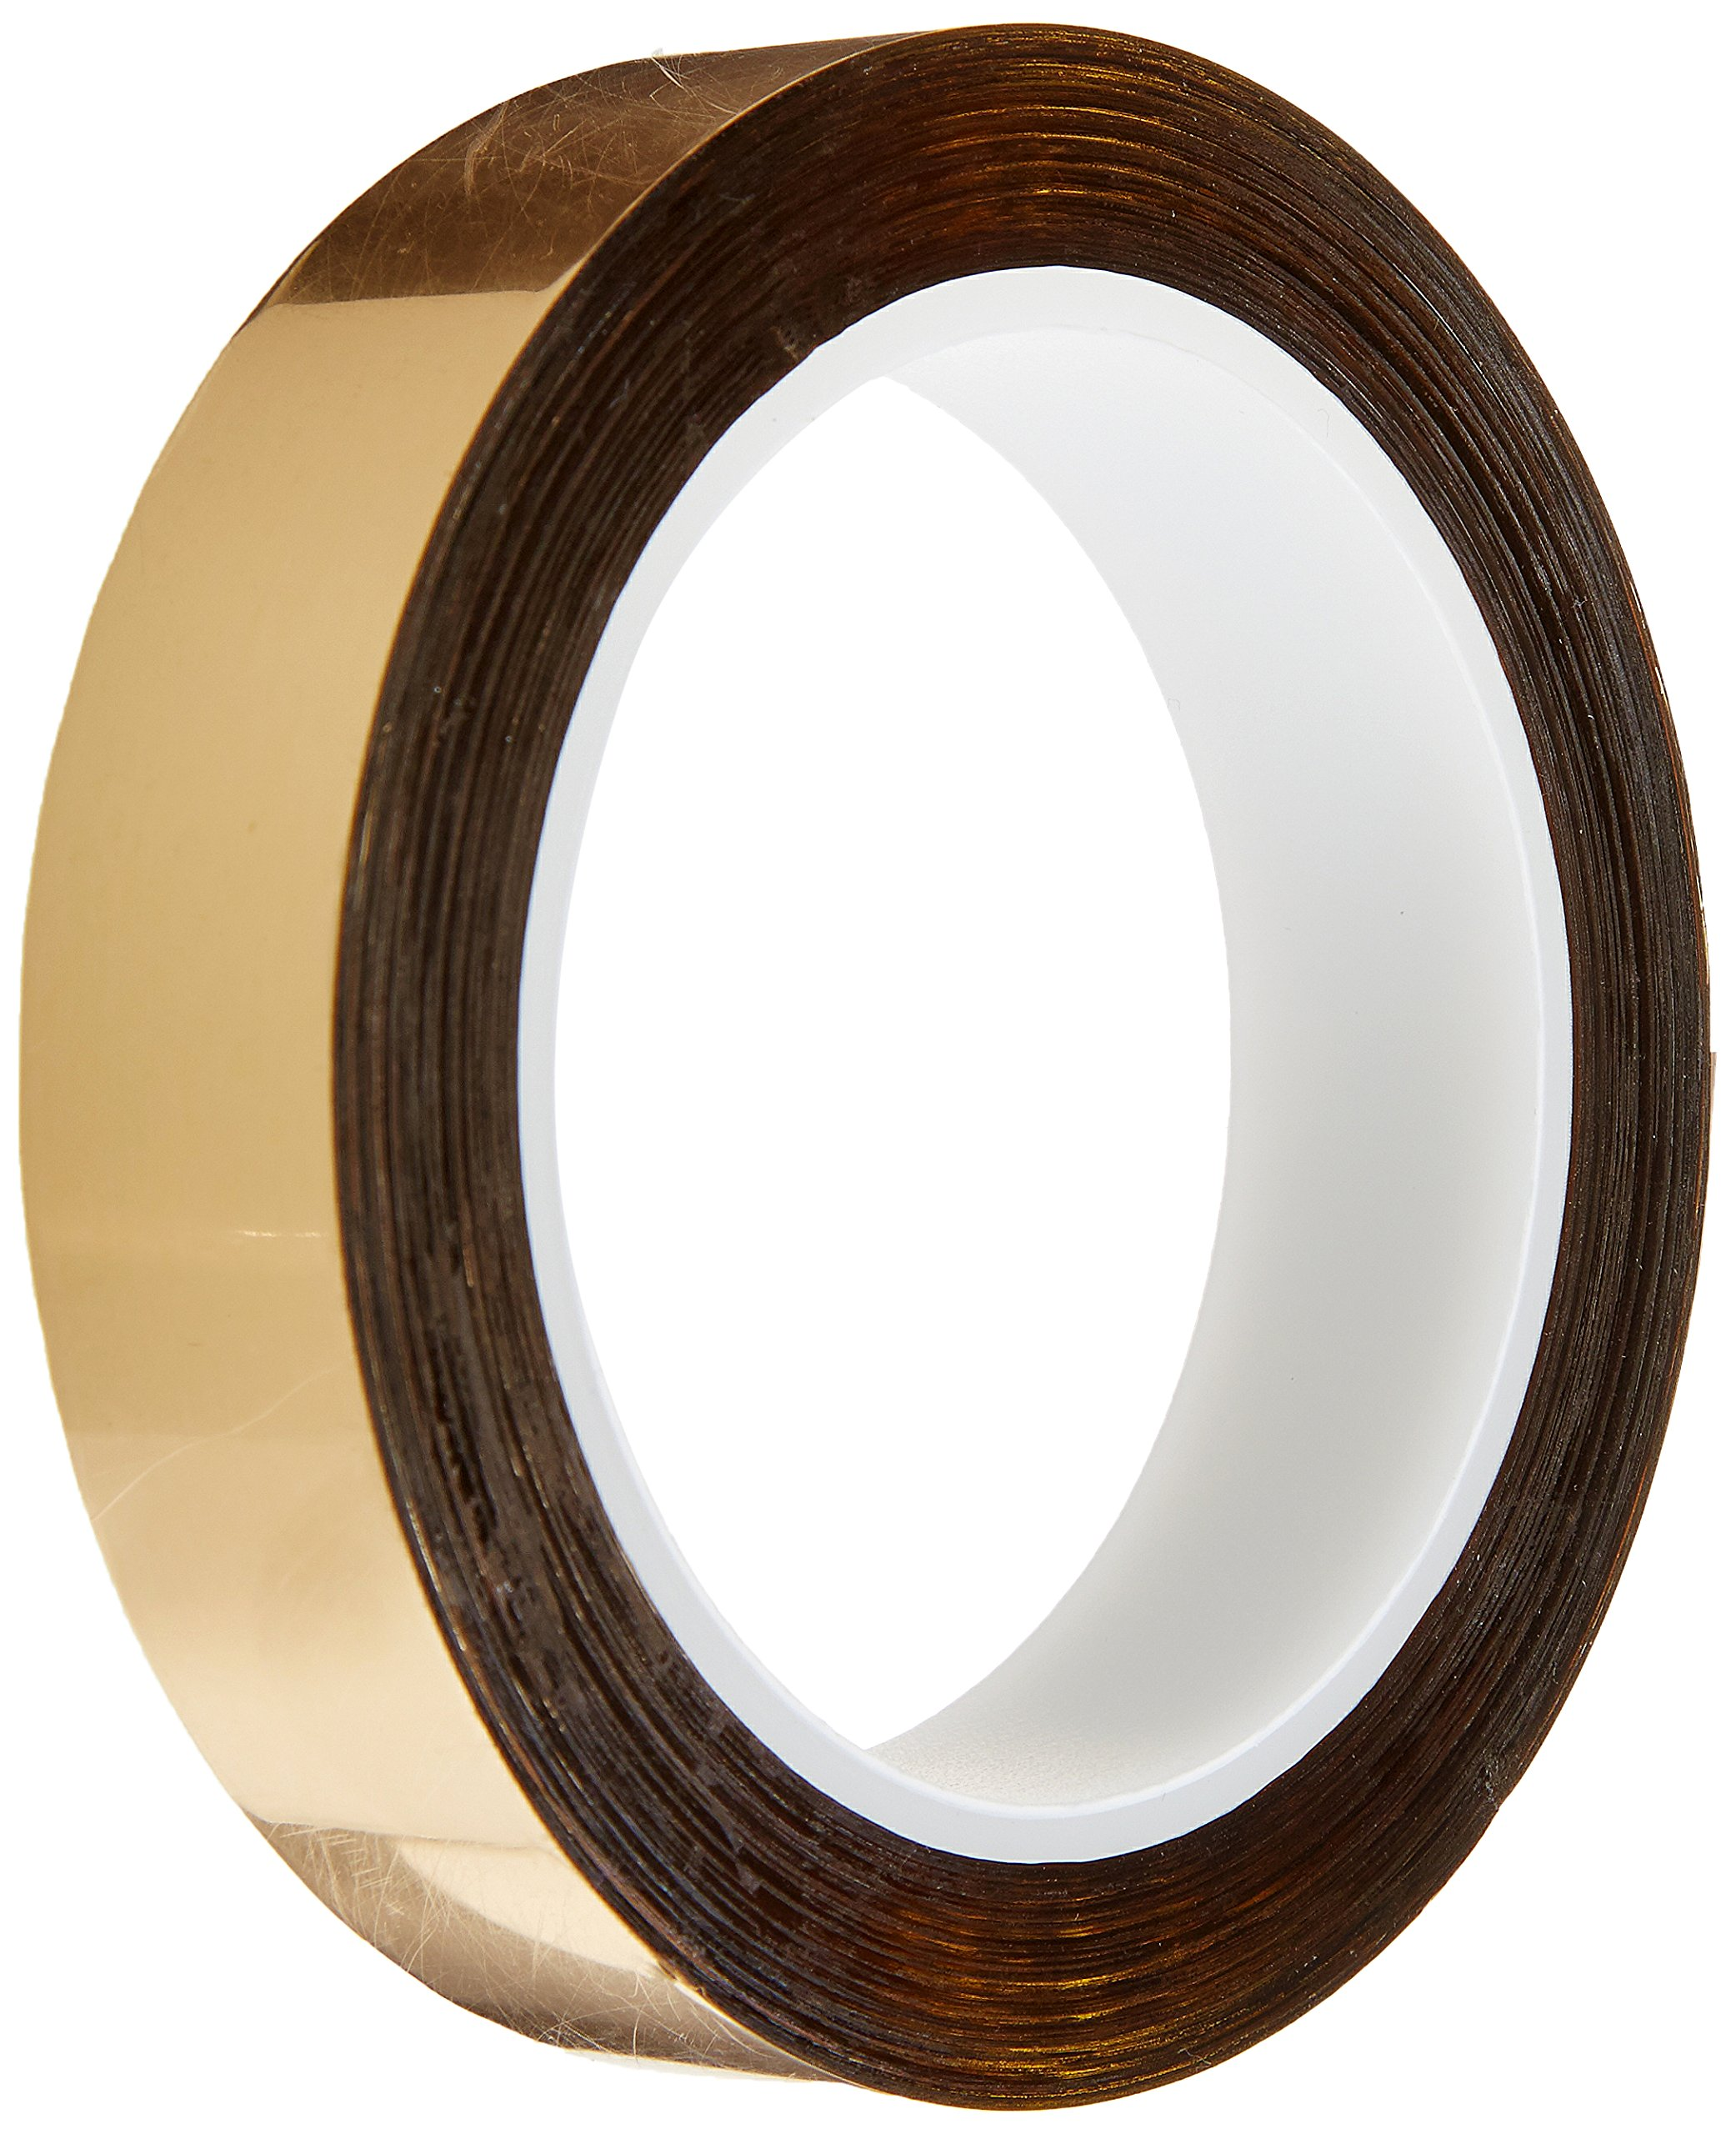 CS Hyde 24-MF Gold Metallized Mylar Tape, 0.875'' x 36 Yards by CS Hyde